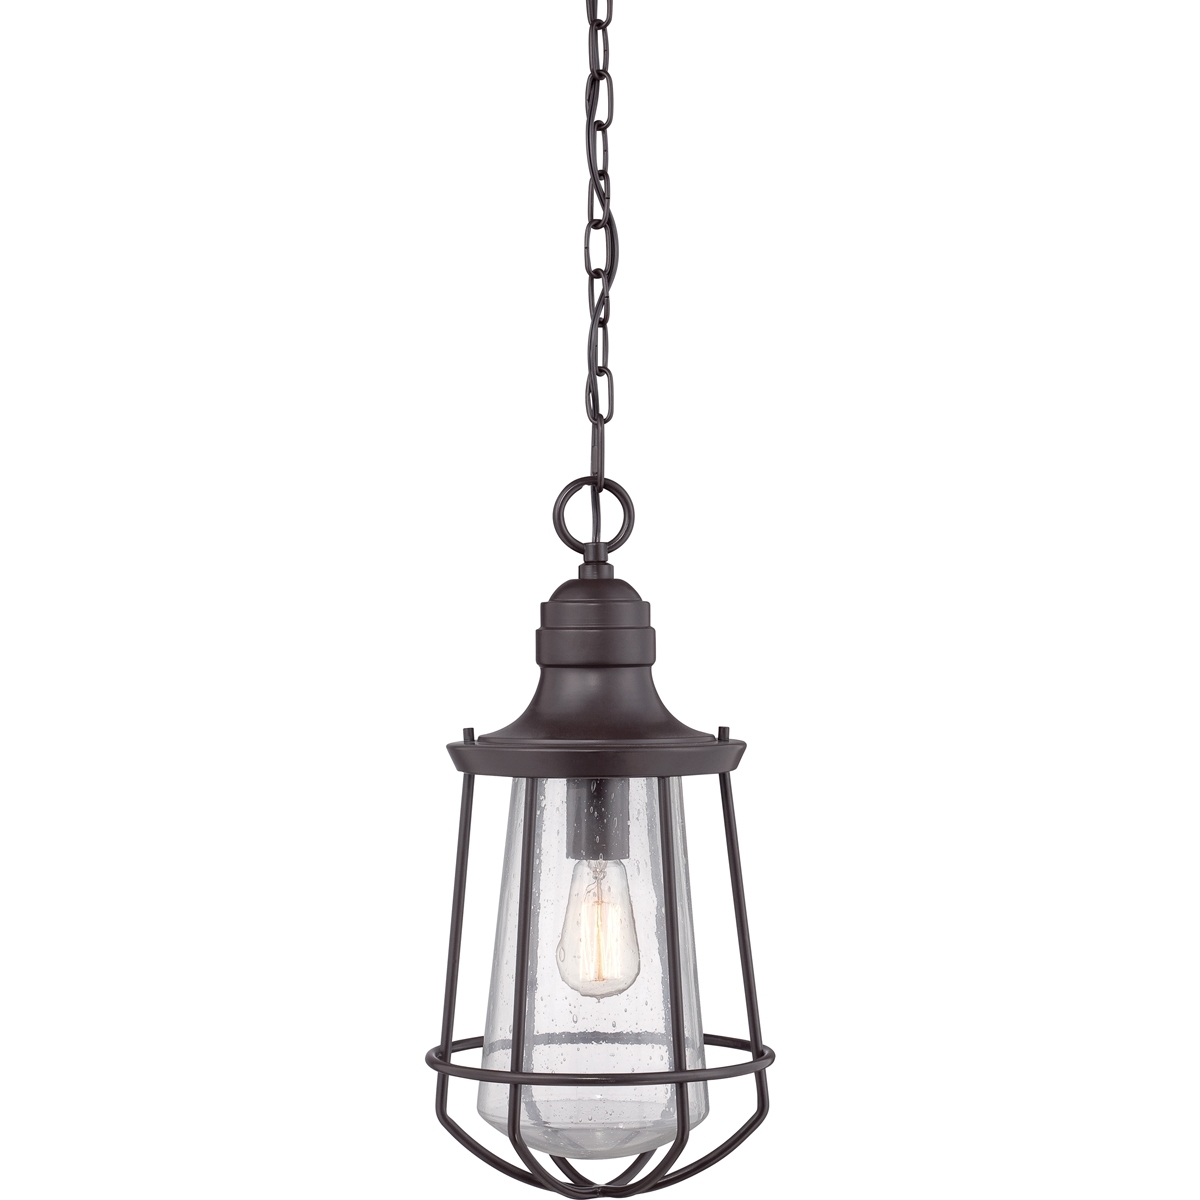 Most Popular Attractive Outdoor Hanging Light Fixtures Including Pendant Trends With Regard To Outdoor Hanging Light Pendants (View 7 of 20)